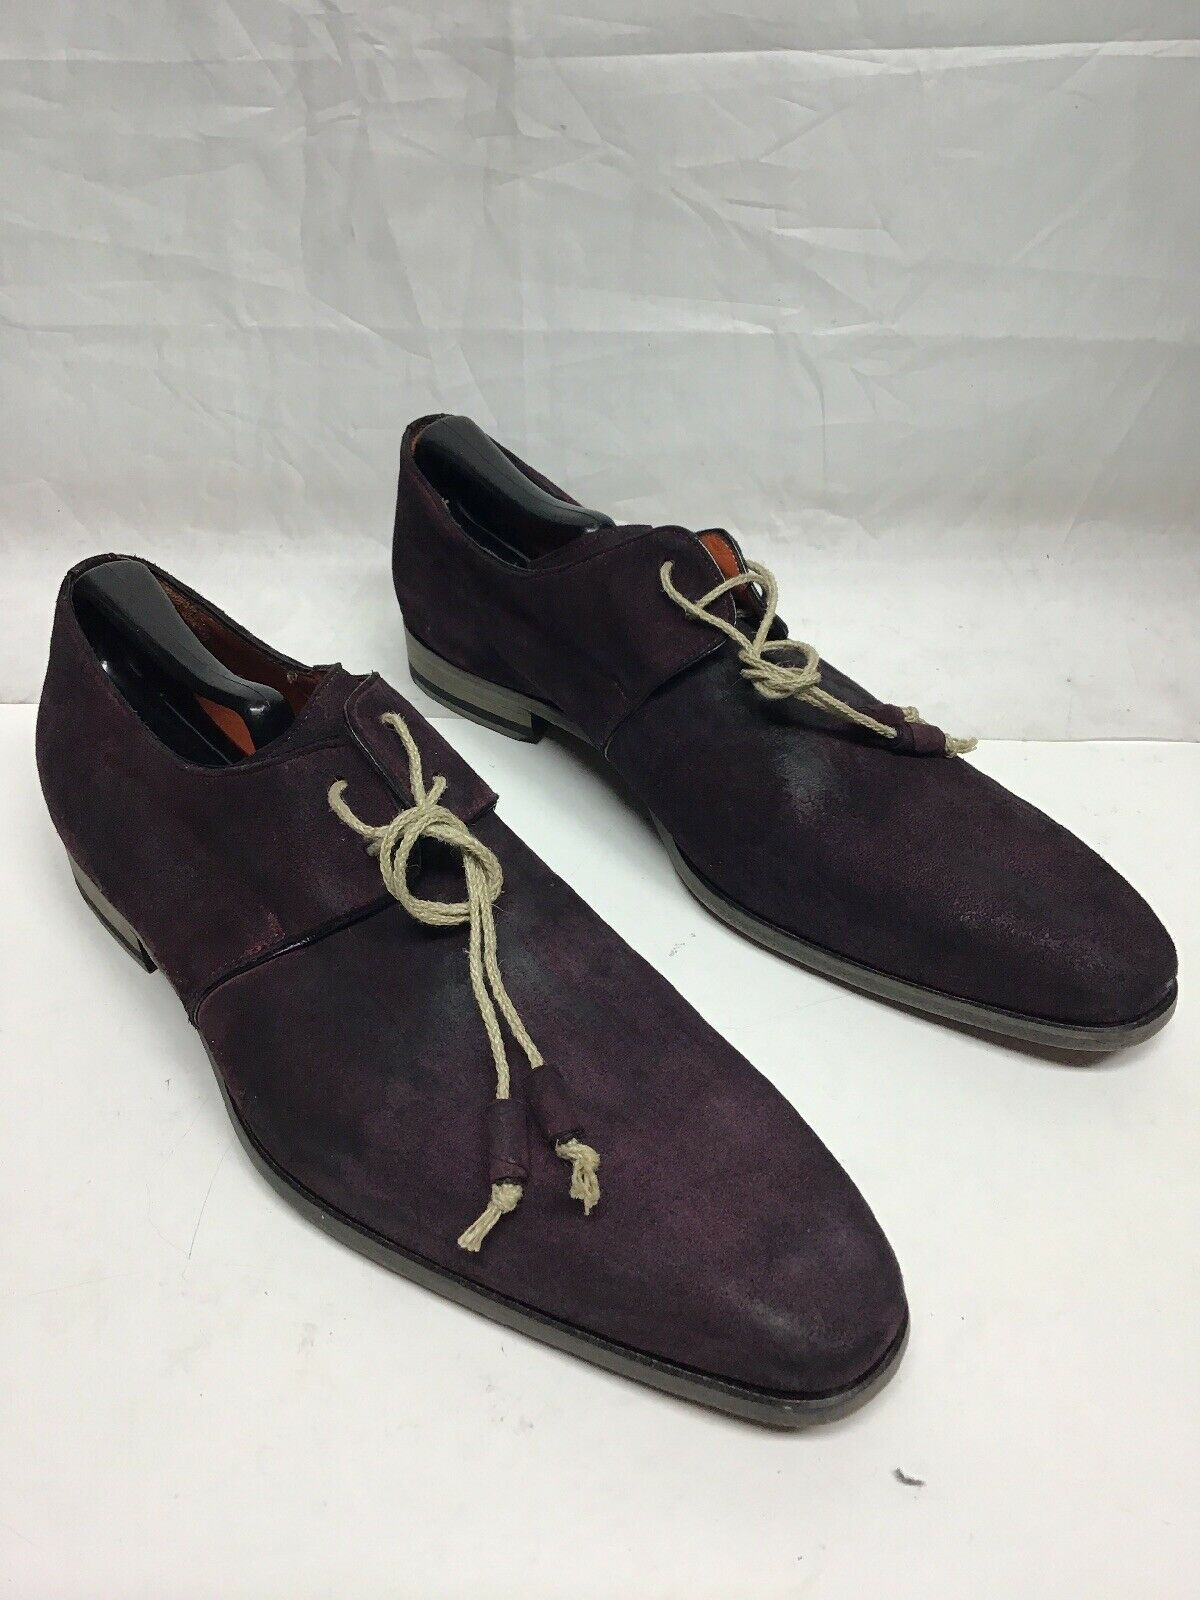 Mezlan Burgundy Suede Laceup Burnished Burgundy Oxfords 10 M